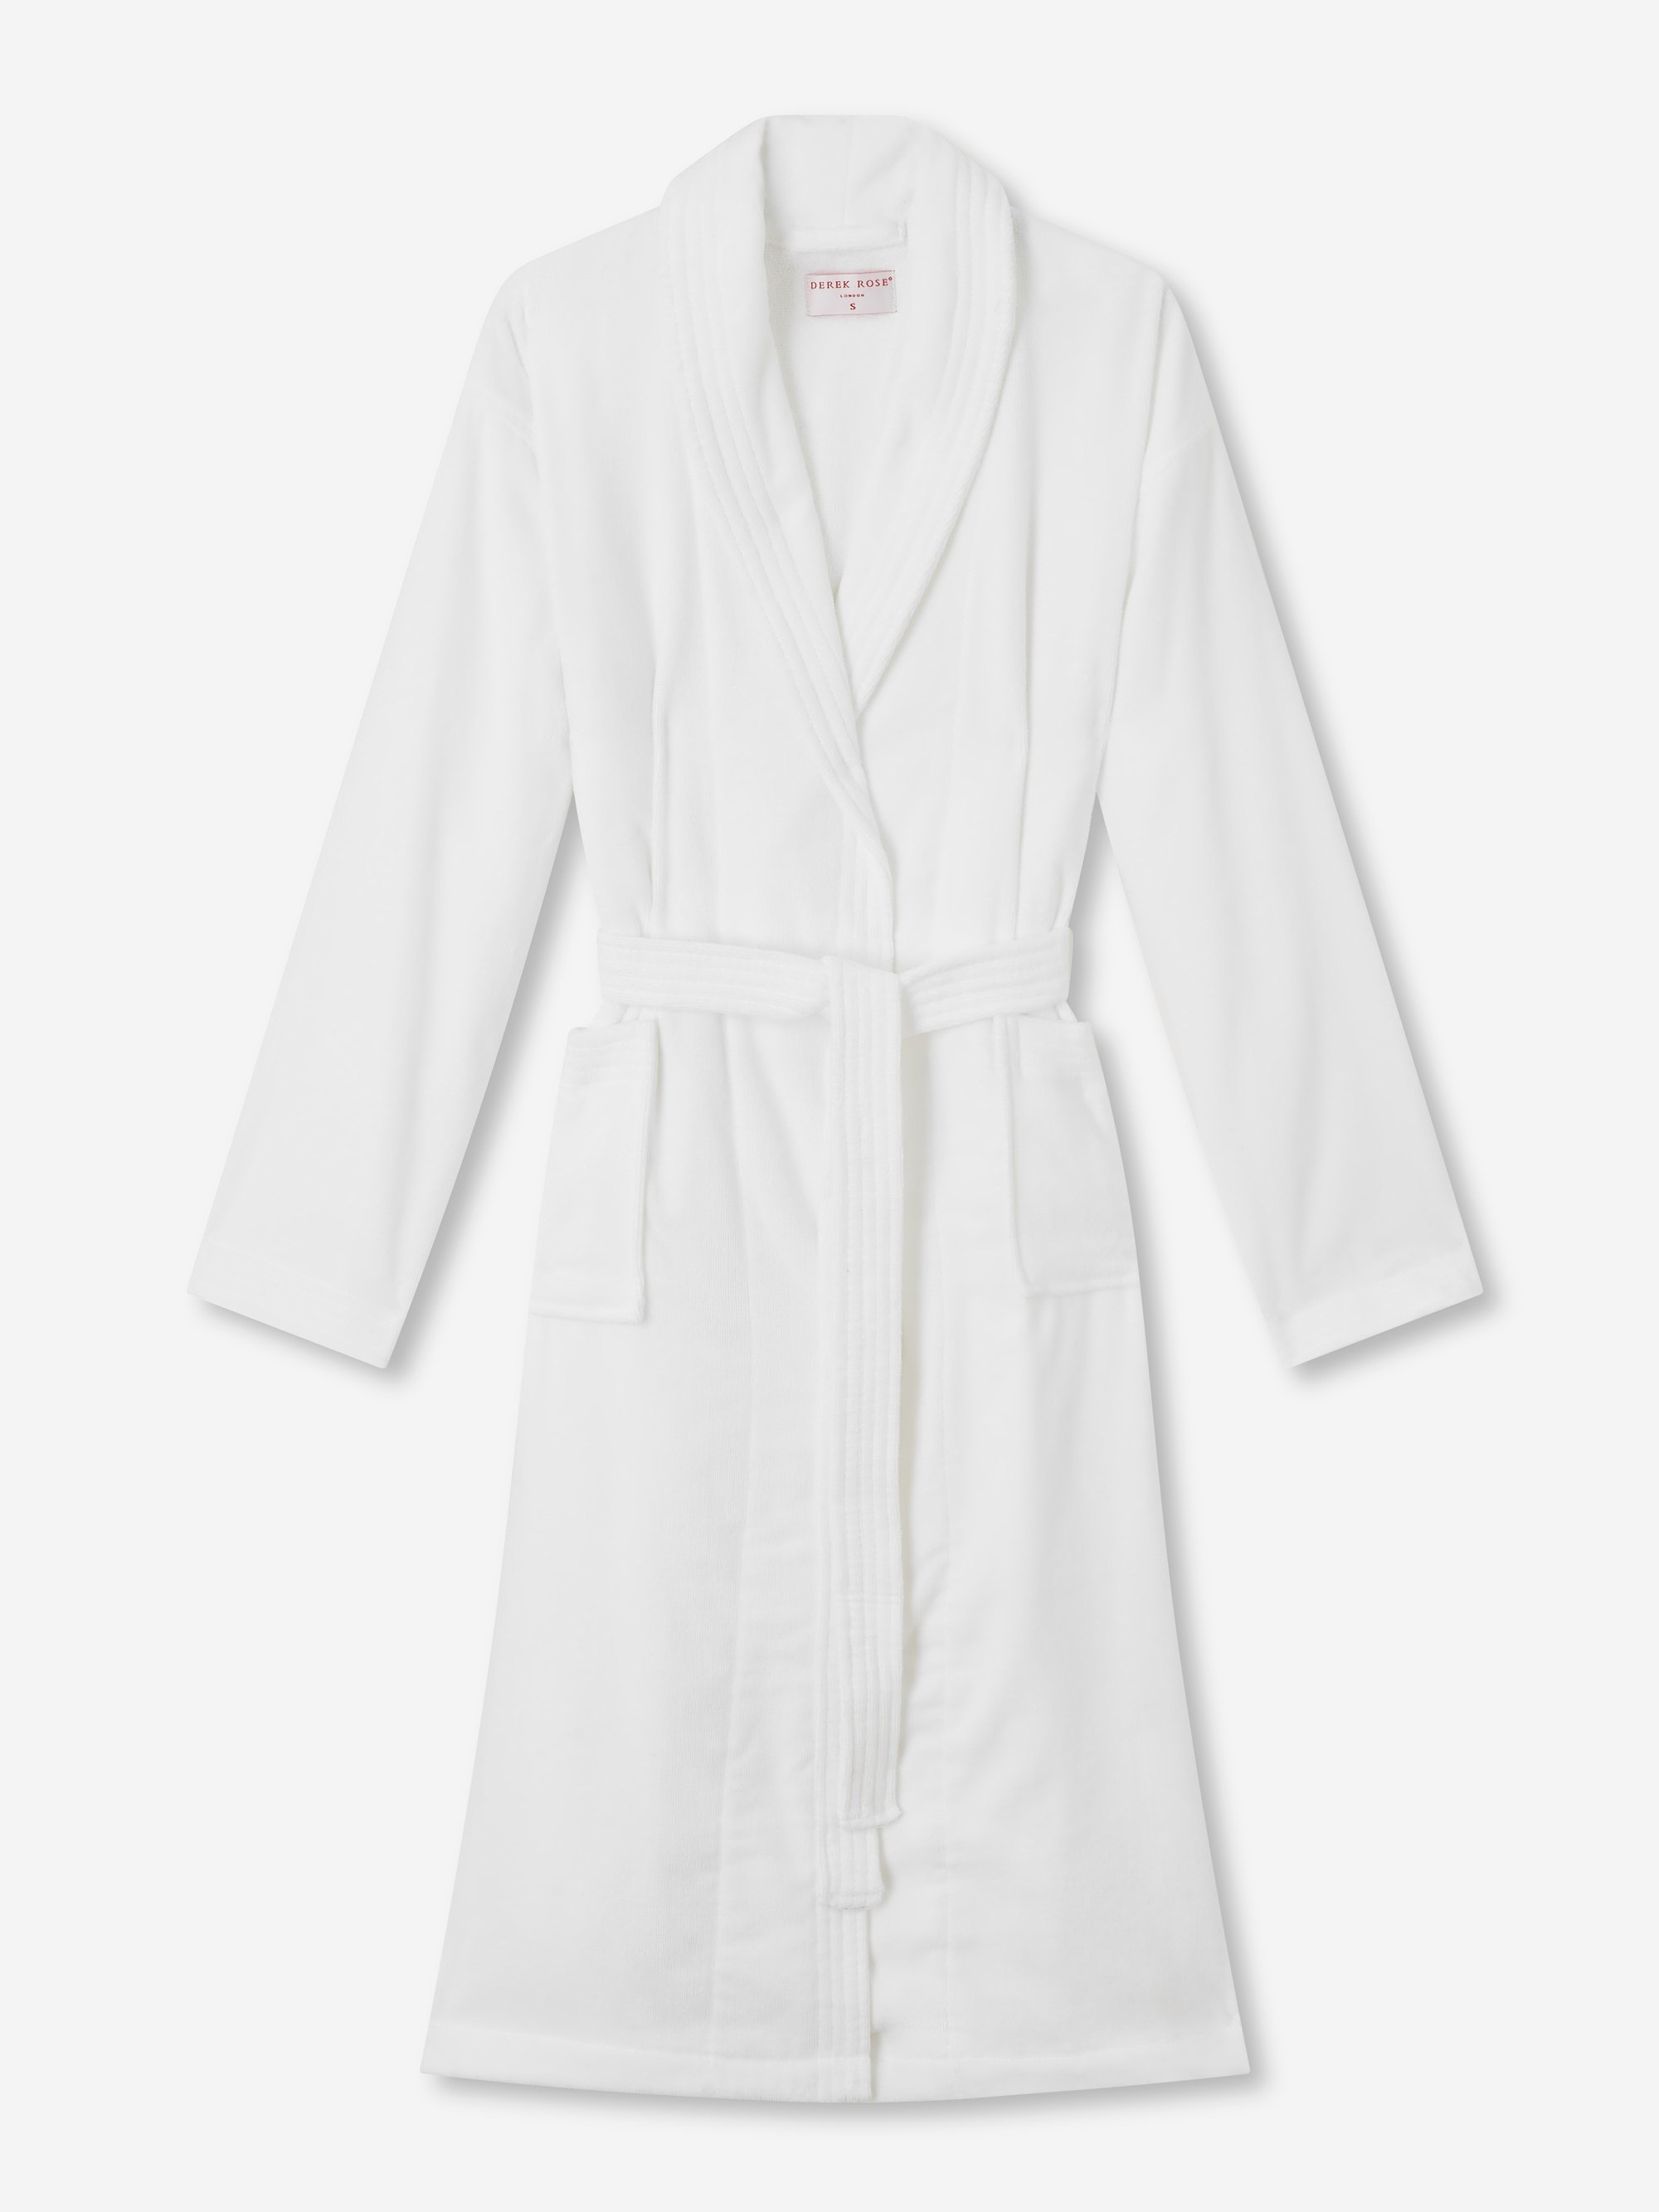 Women's Towelling Gown Triton 10 Cotton Velour White